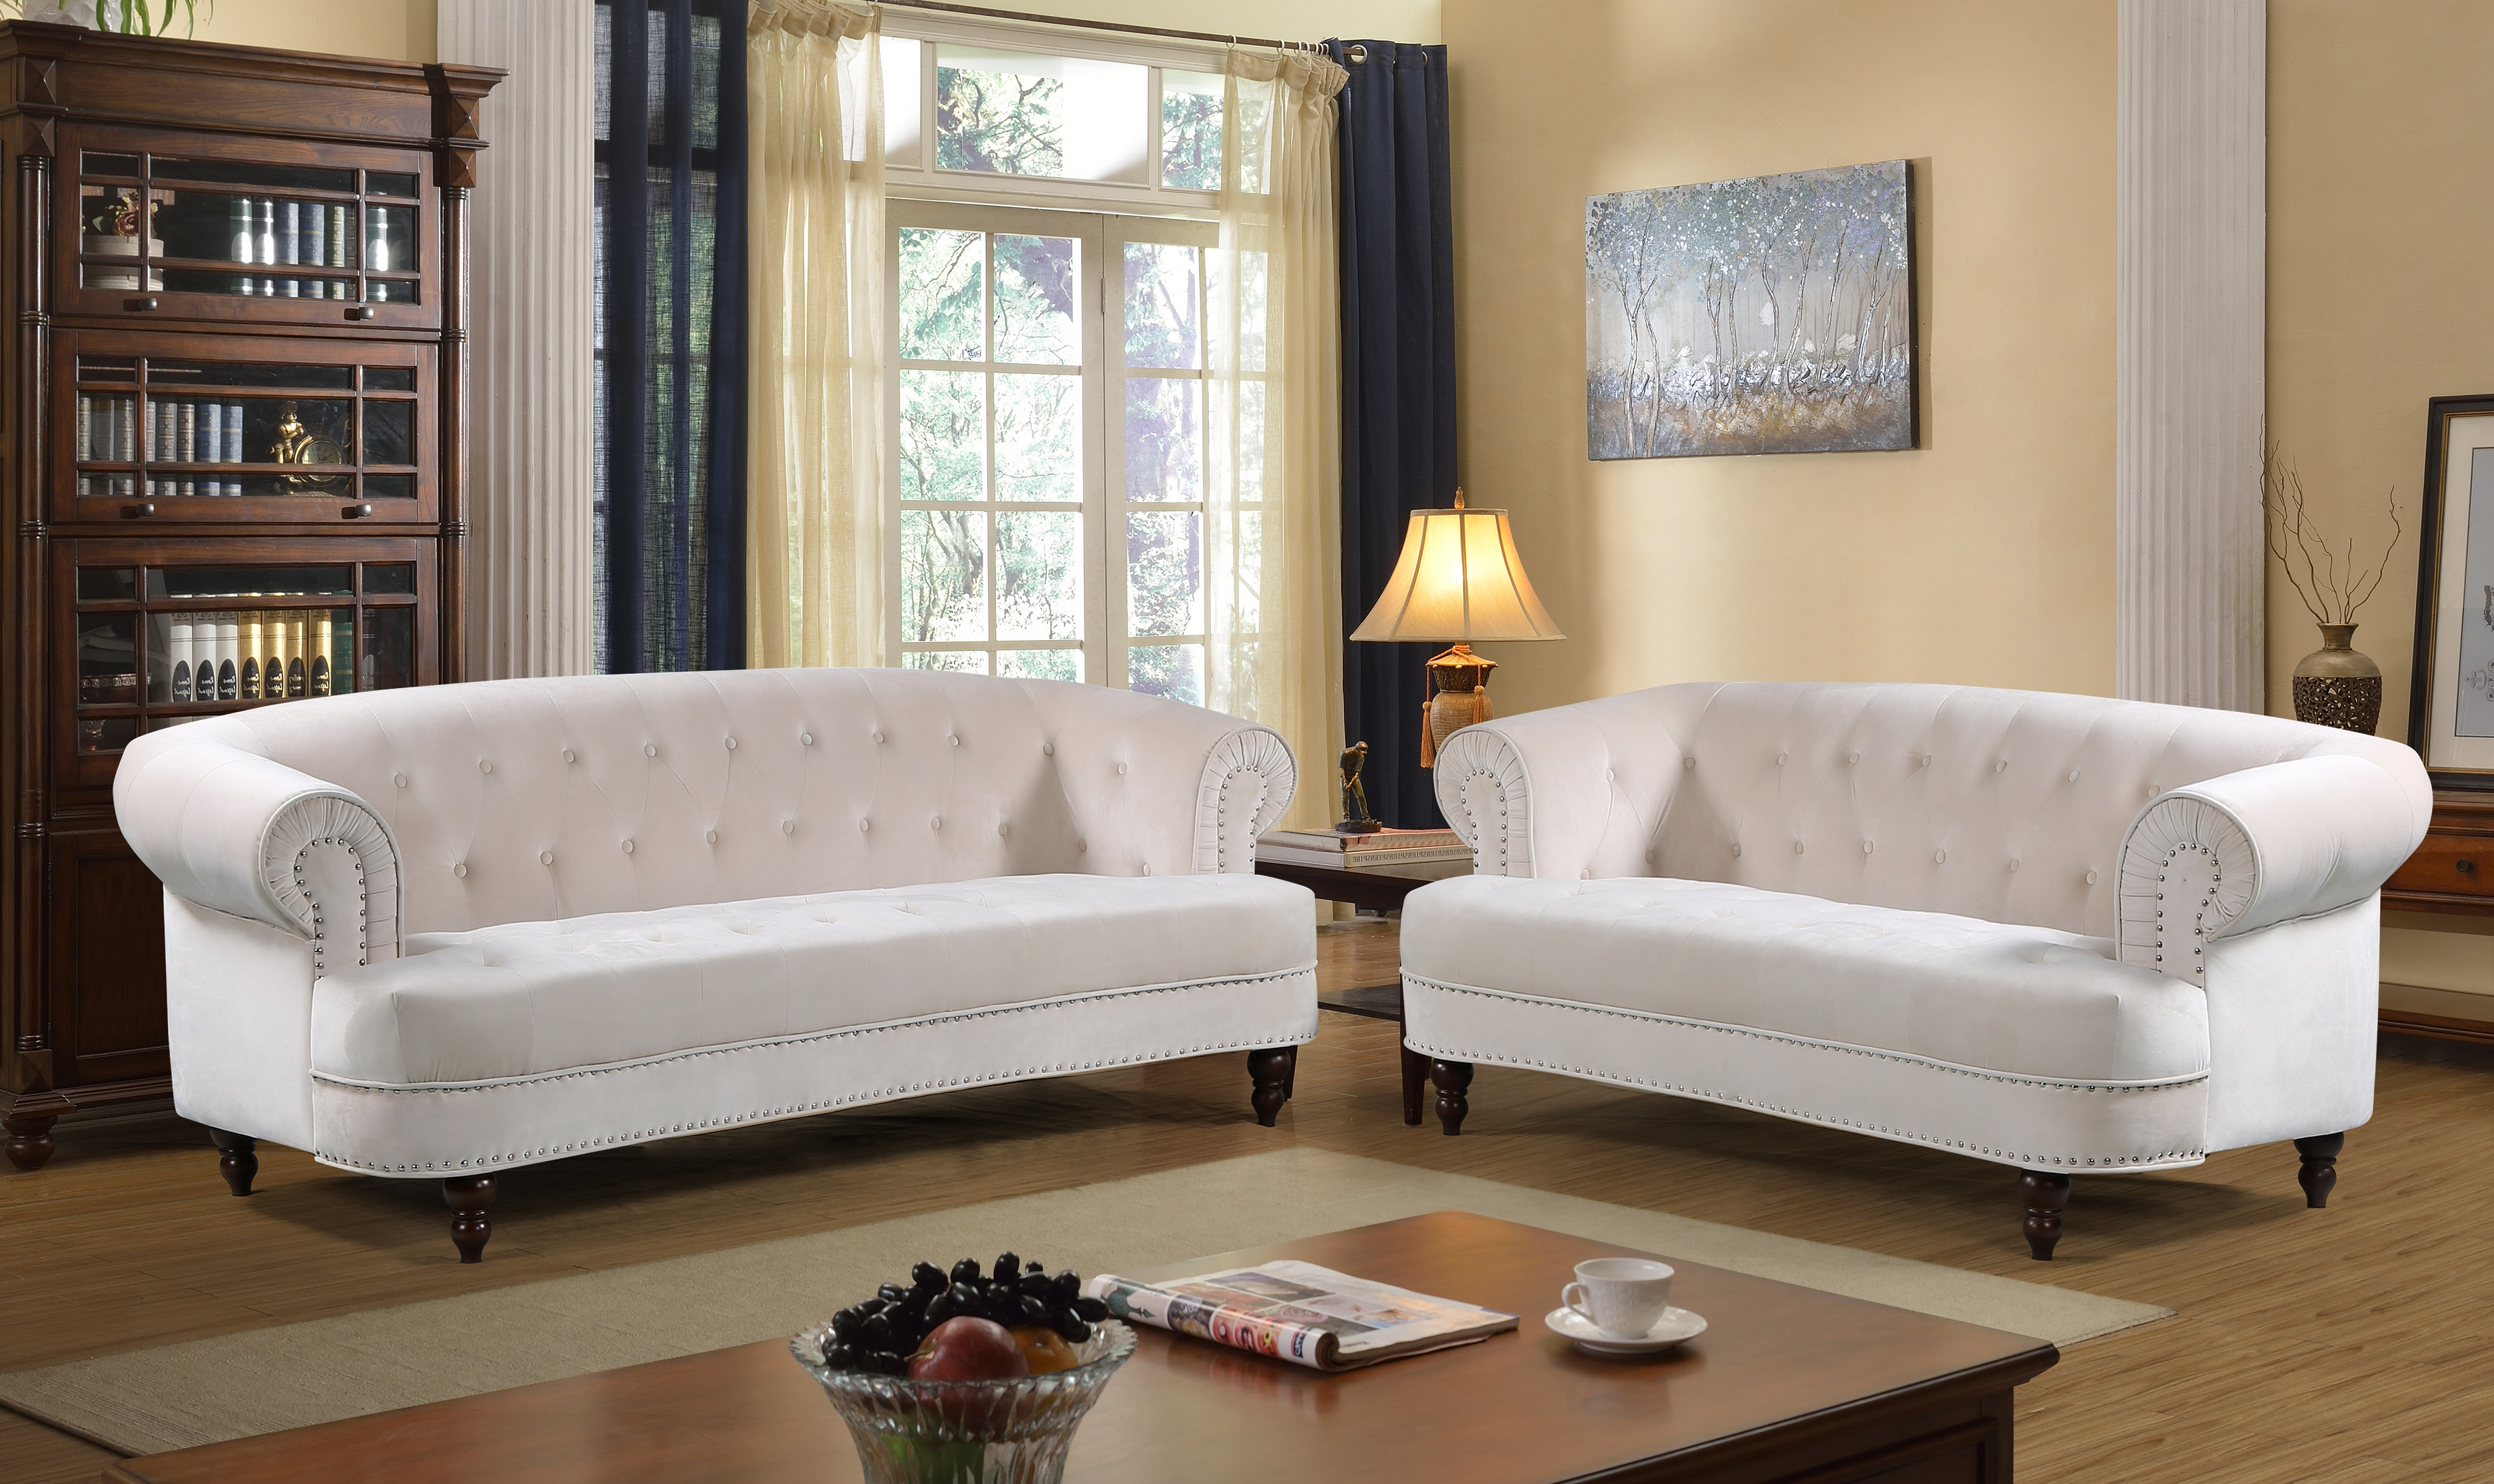 Us pride furniture downey velvet nail head chesterfield 2 piece sofa and love seat ivory walmart com